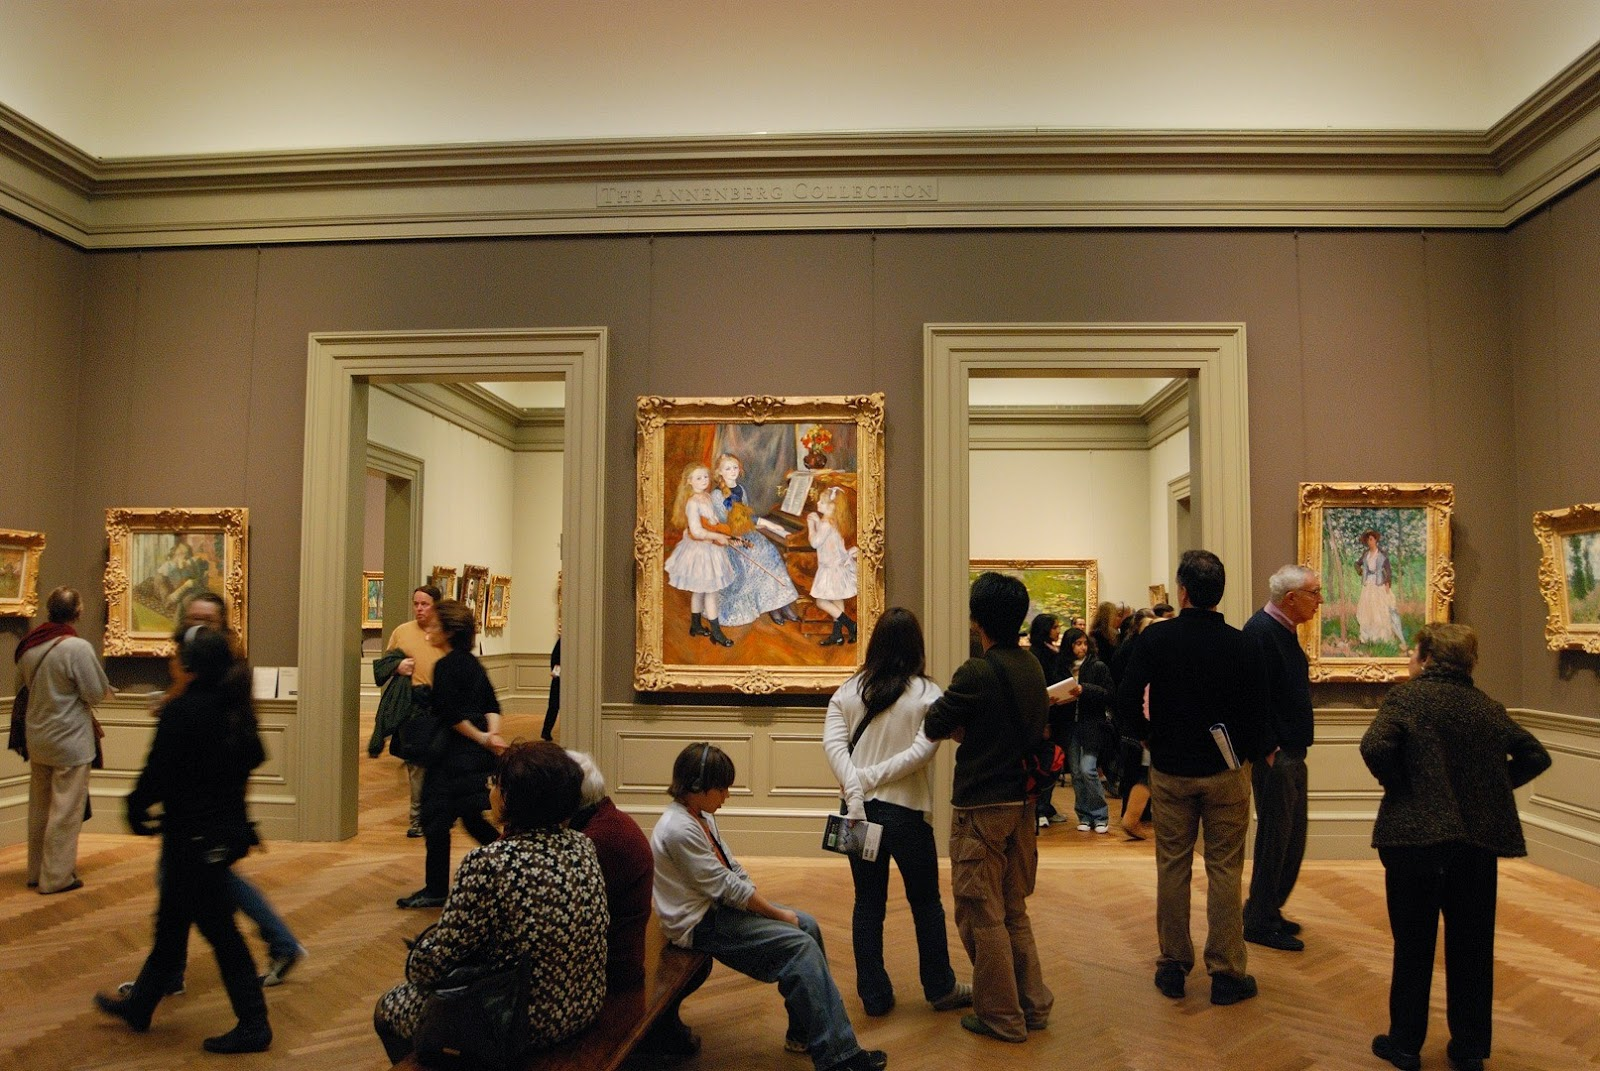 Metropolitan museum of art in new york usa for Metropolitan mueseum of art